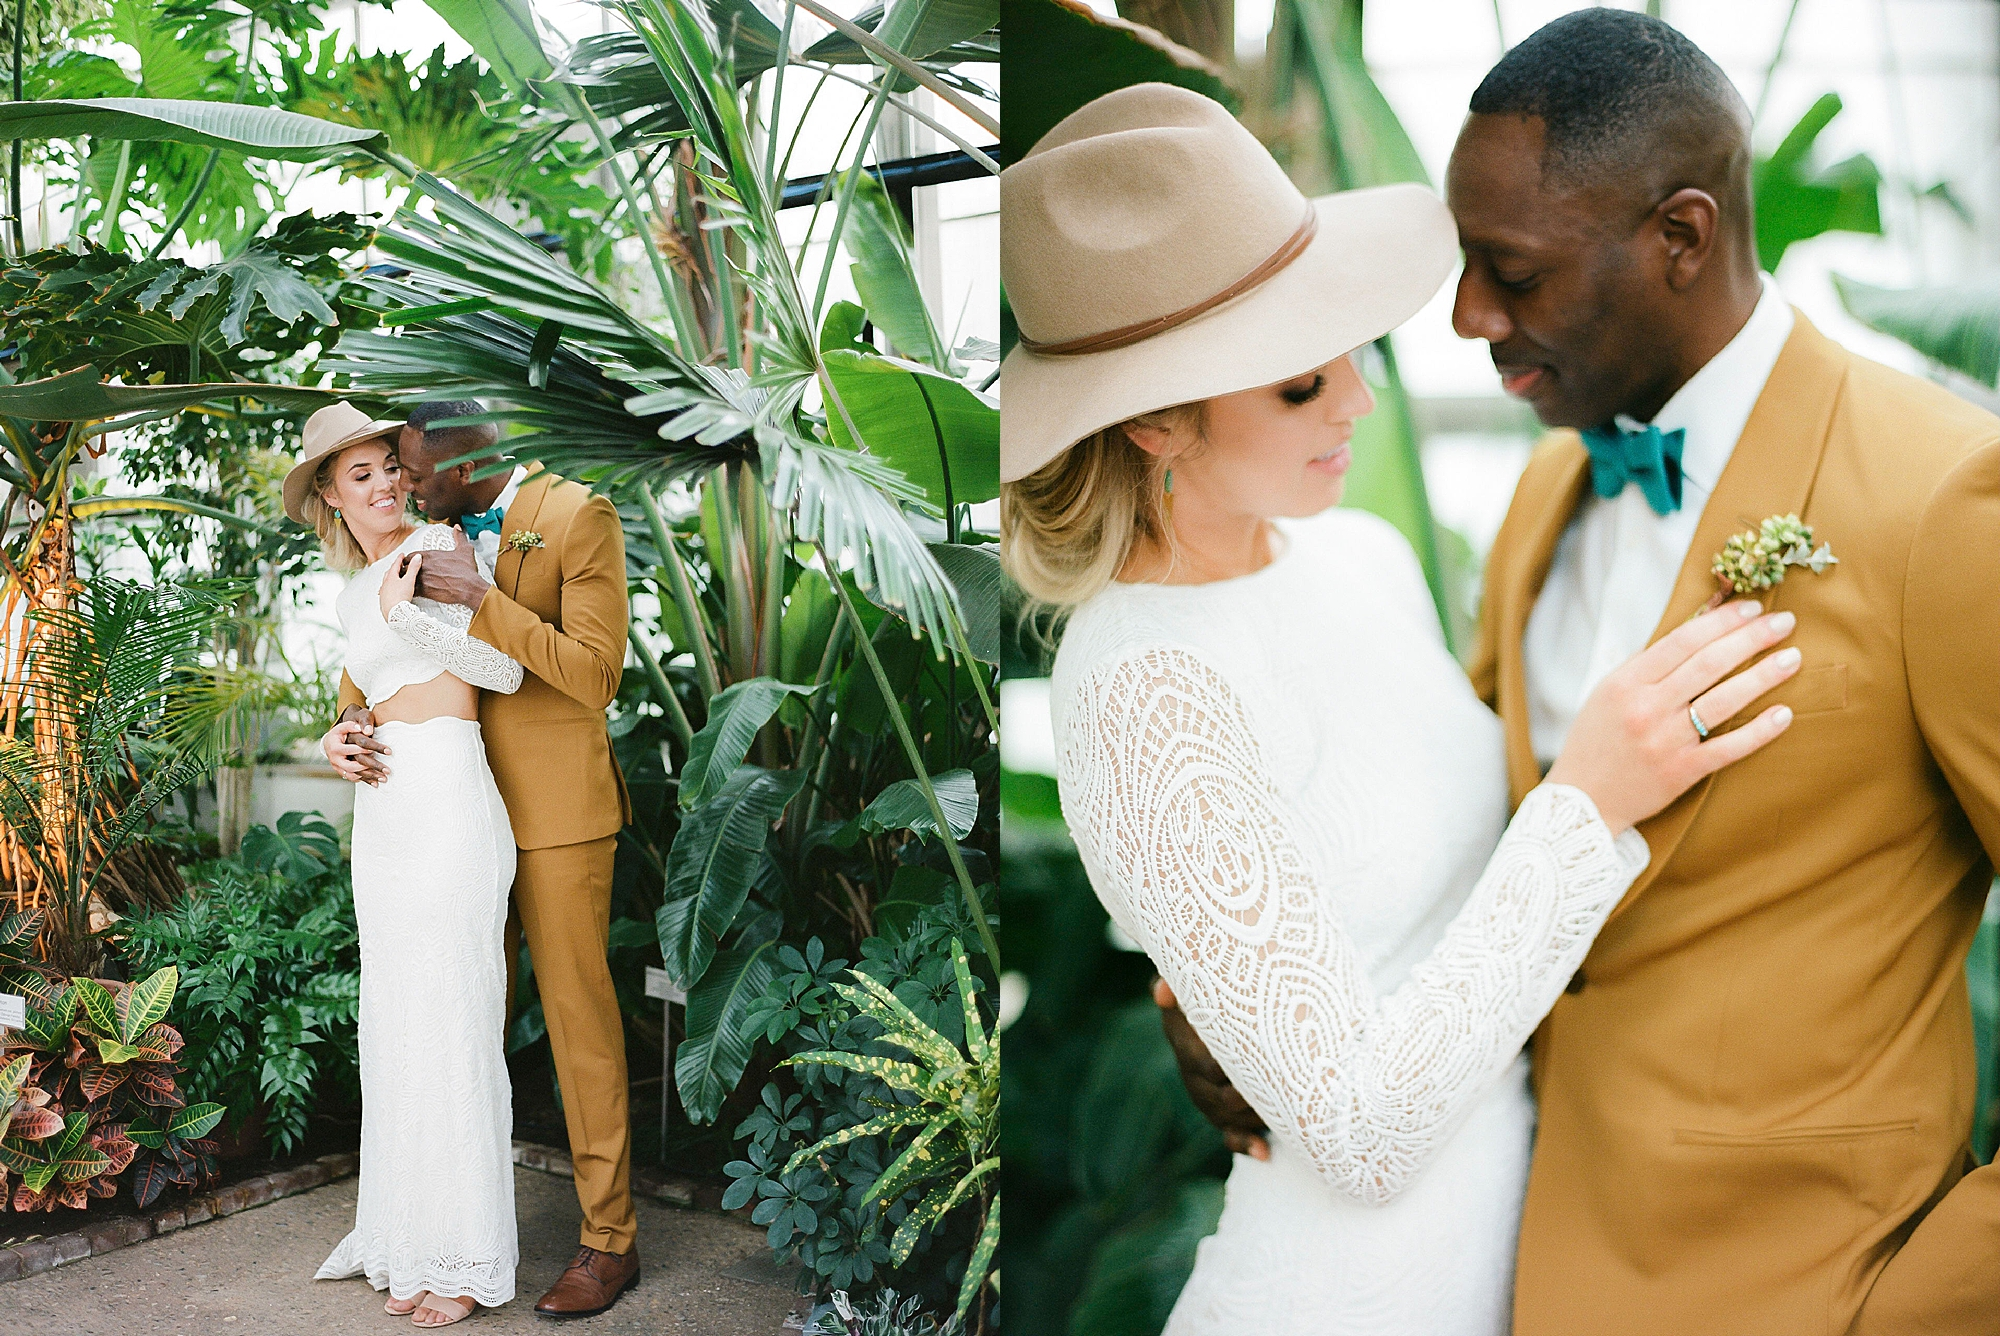 Colorful and Vibrant Wedding Photography at Fairmount Horticultural Center by Magdalena Studios 0046